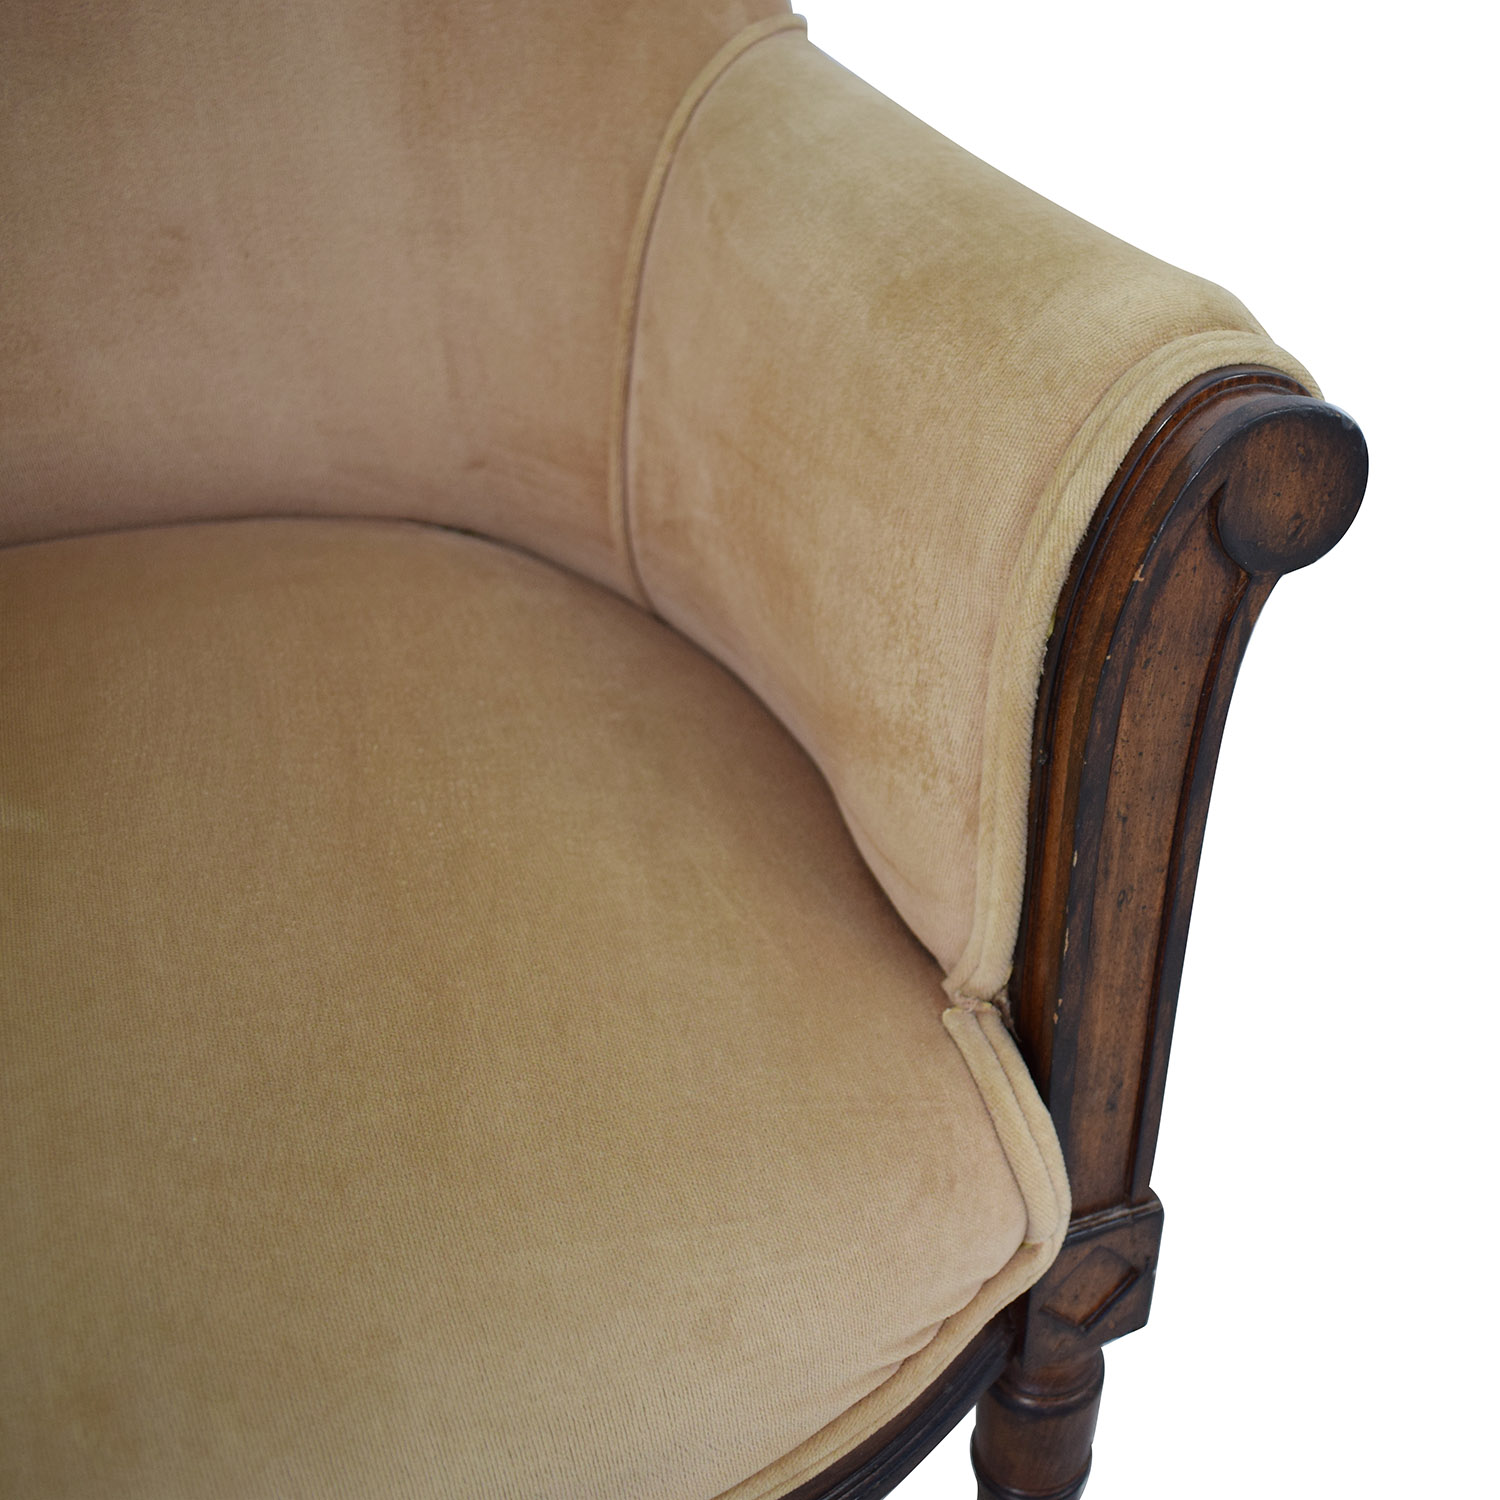 Meyer Gunther Martini Meyer Gunther Martini Upholstered Arm Chair dimensions